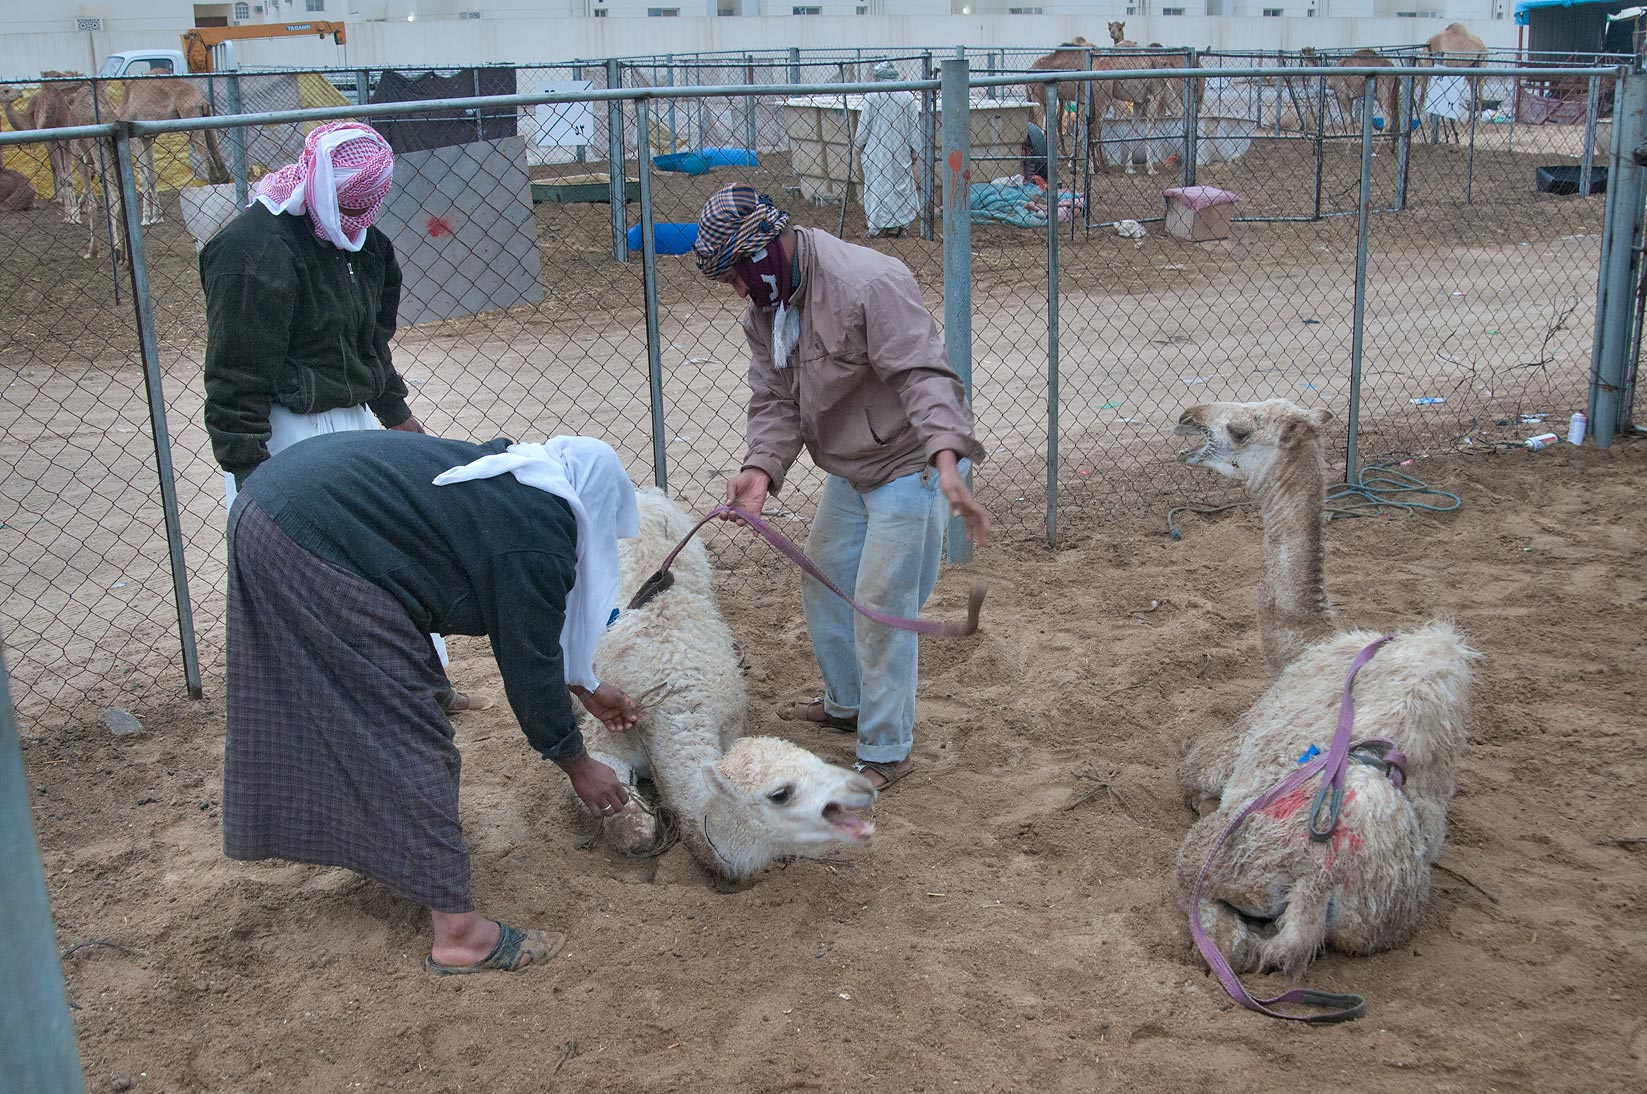 Strapping camel's feet in Camel Market, Wholesale Markets area. Doha, Qatar